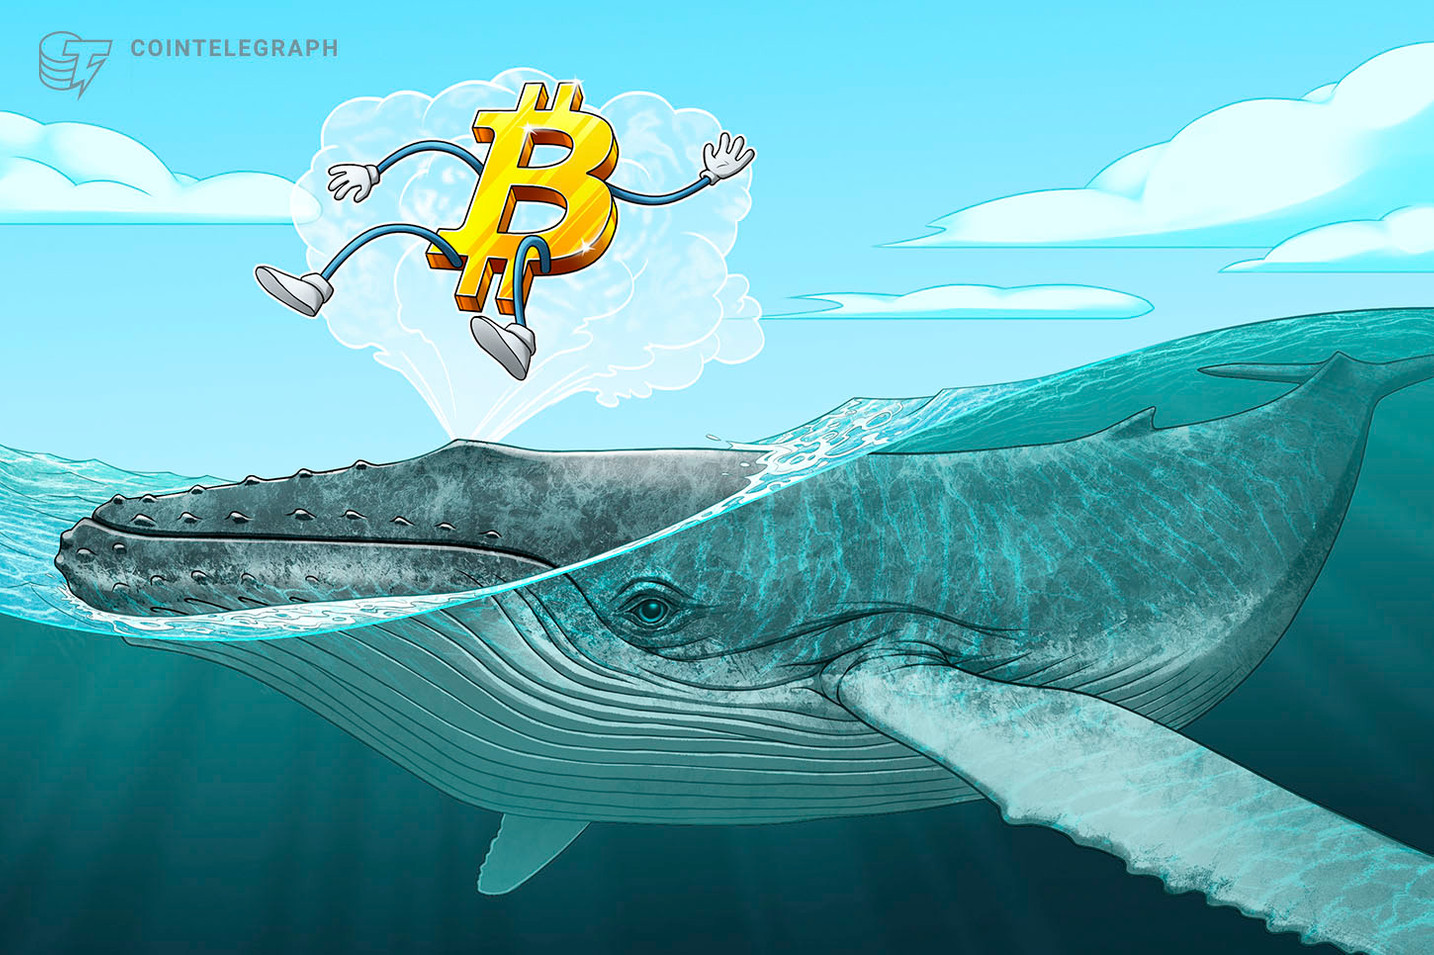 This Bitcoin Whale Sold at $12,000 BTC Price After HODLing for 2 Years